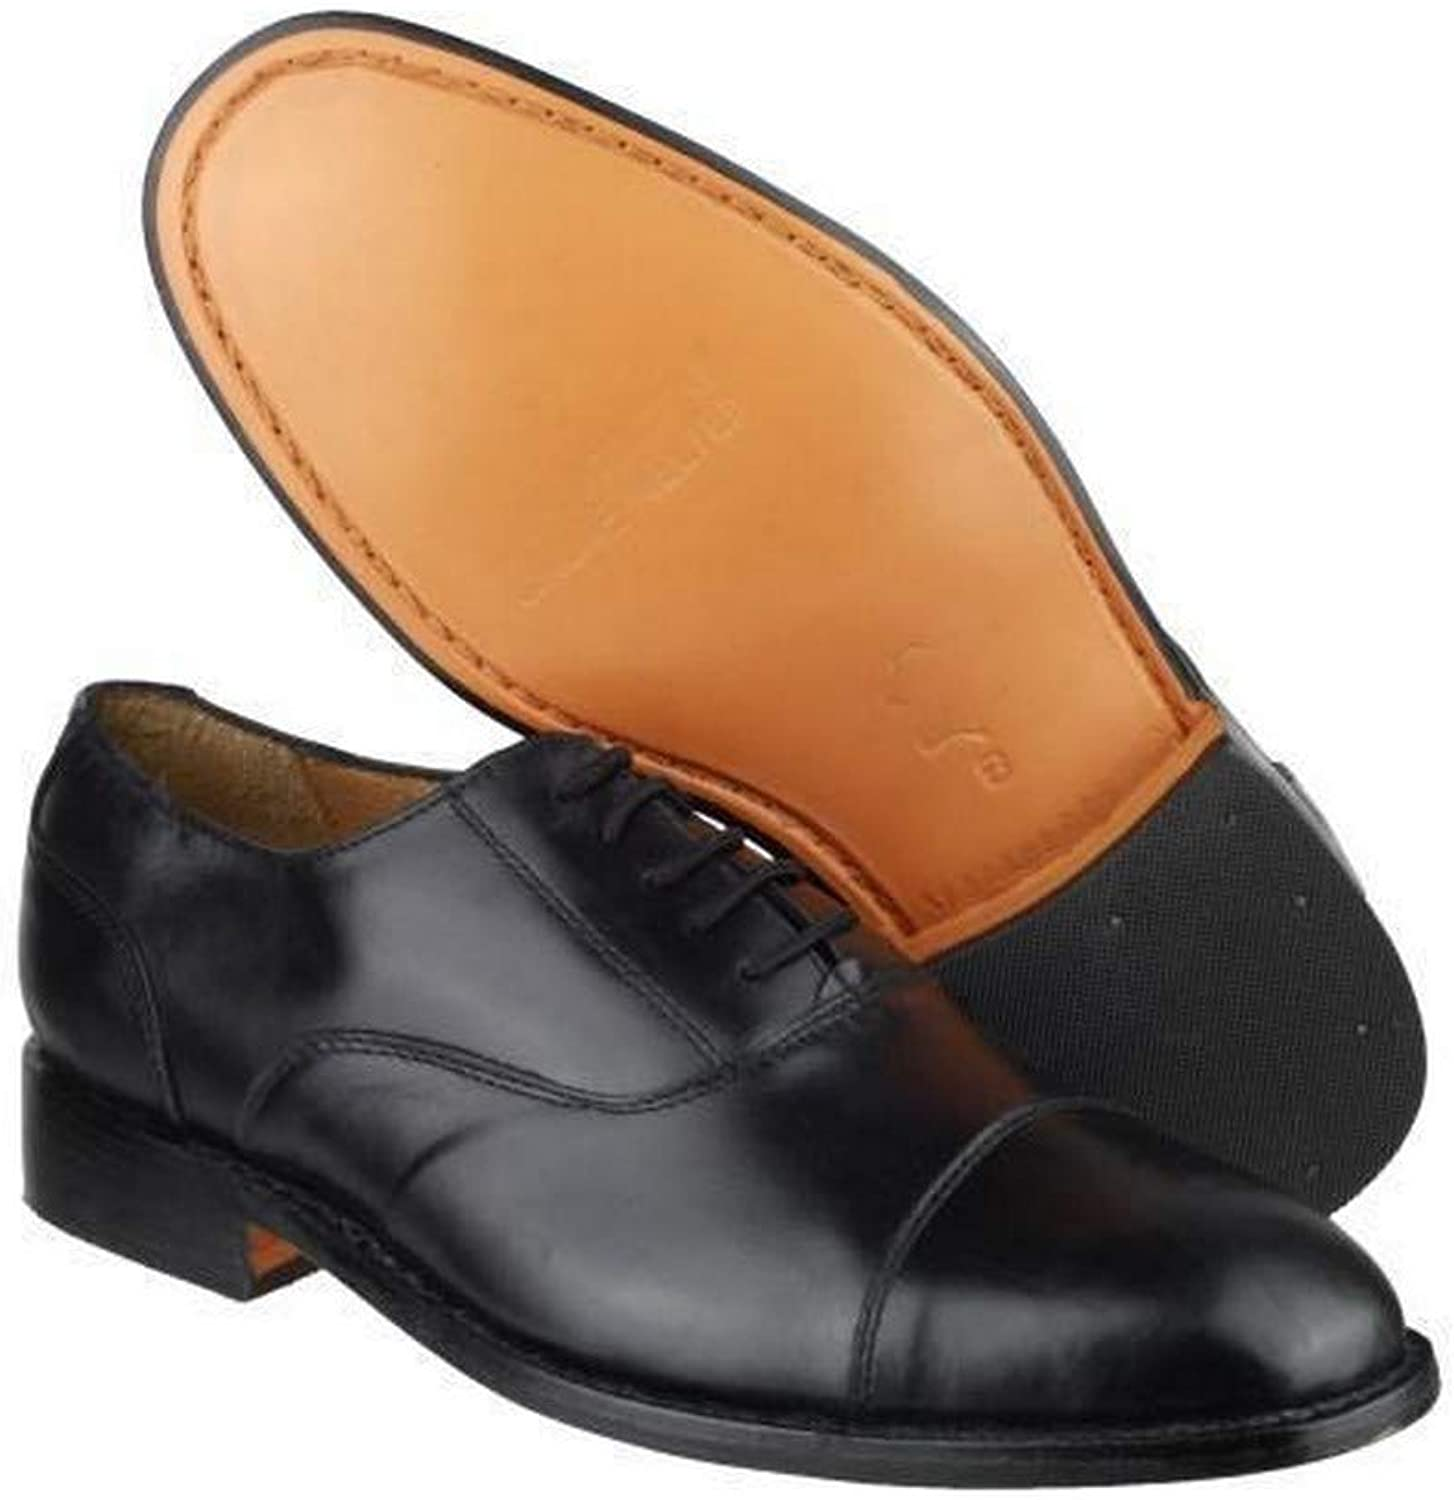 Amblers James Leather Soled shoes Mens shoes Leather - Black